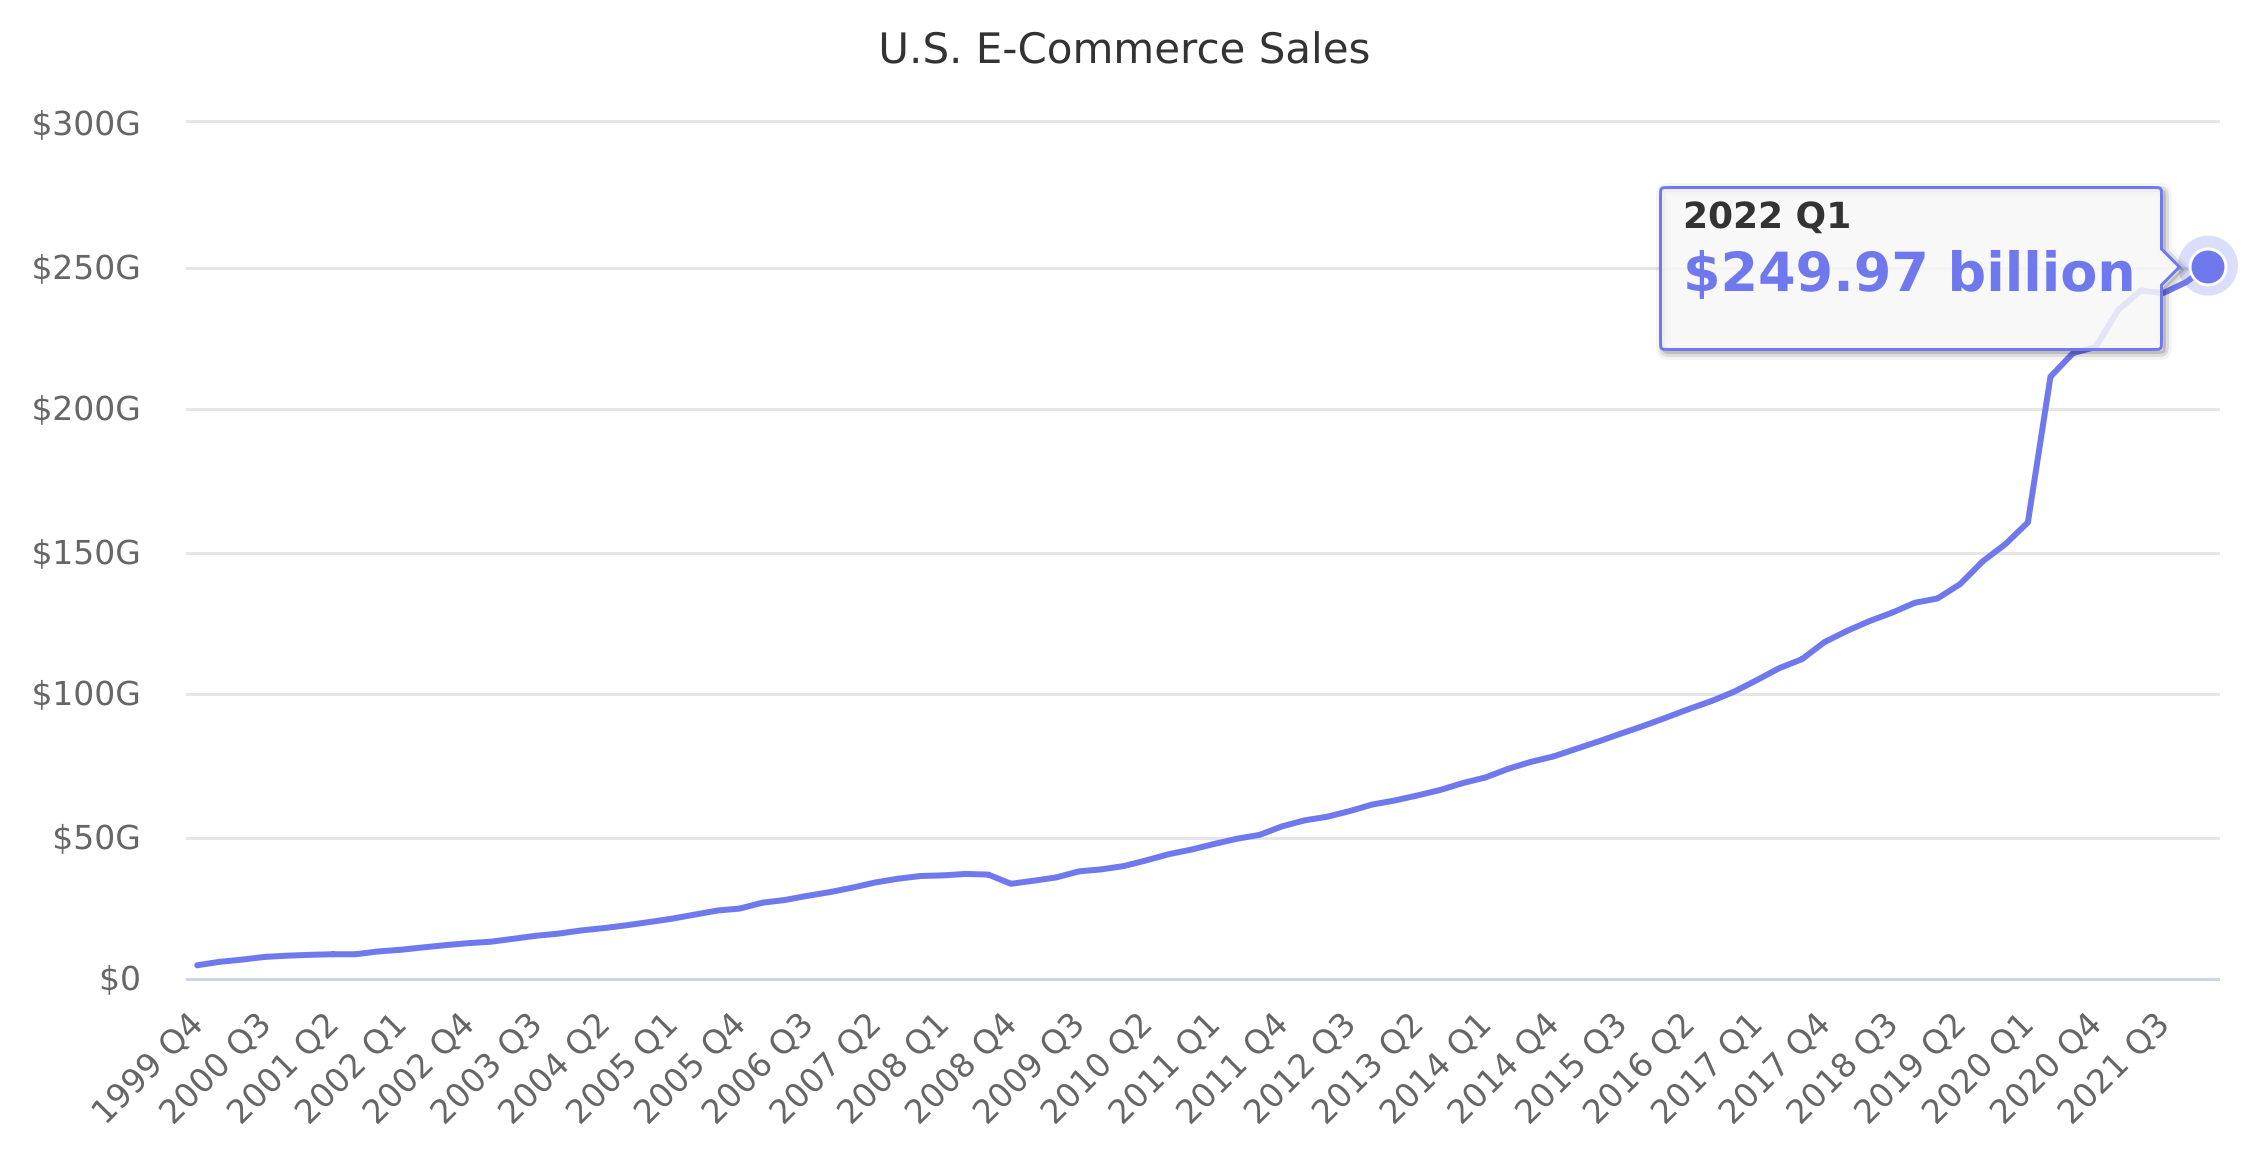 U.S. E-Commerce Sales 1999-2020